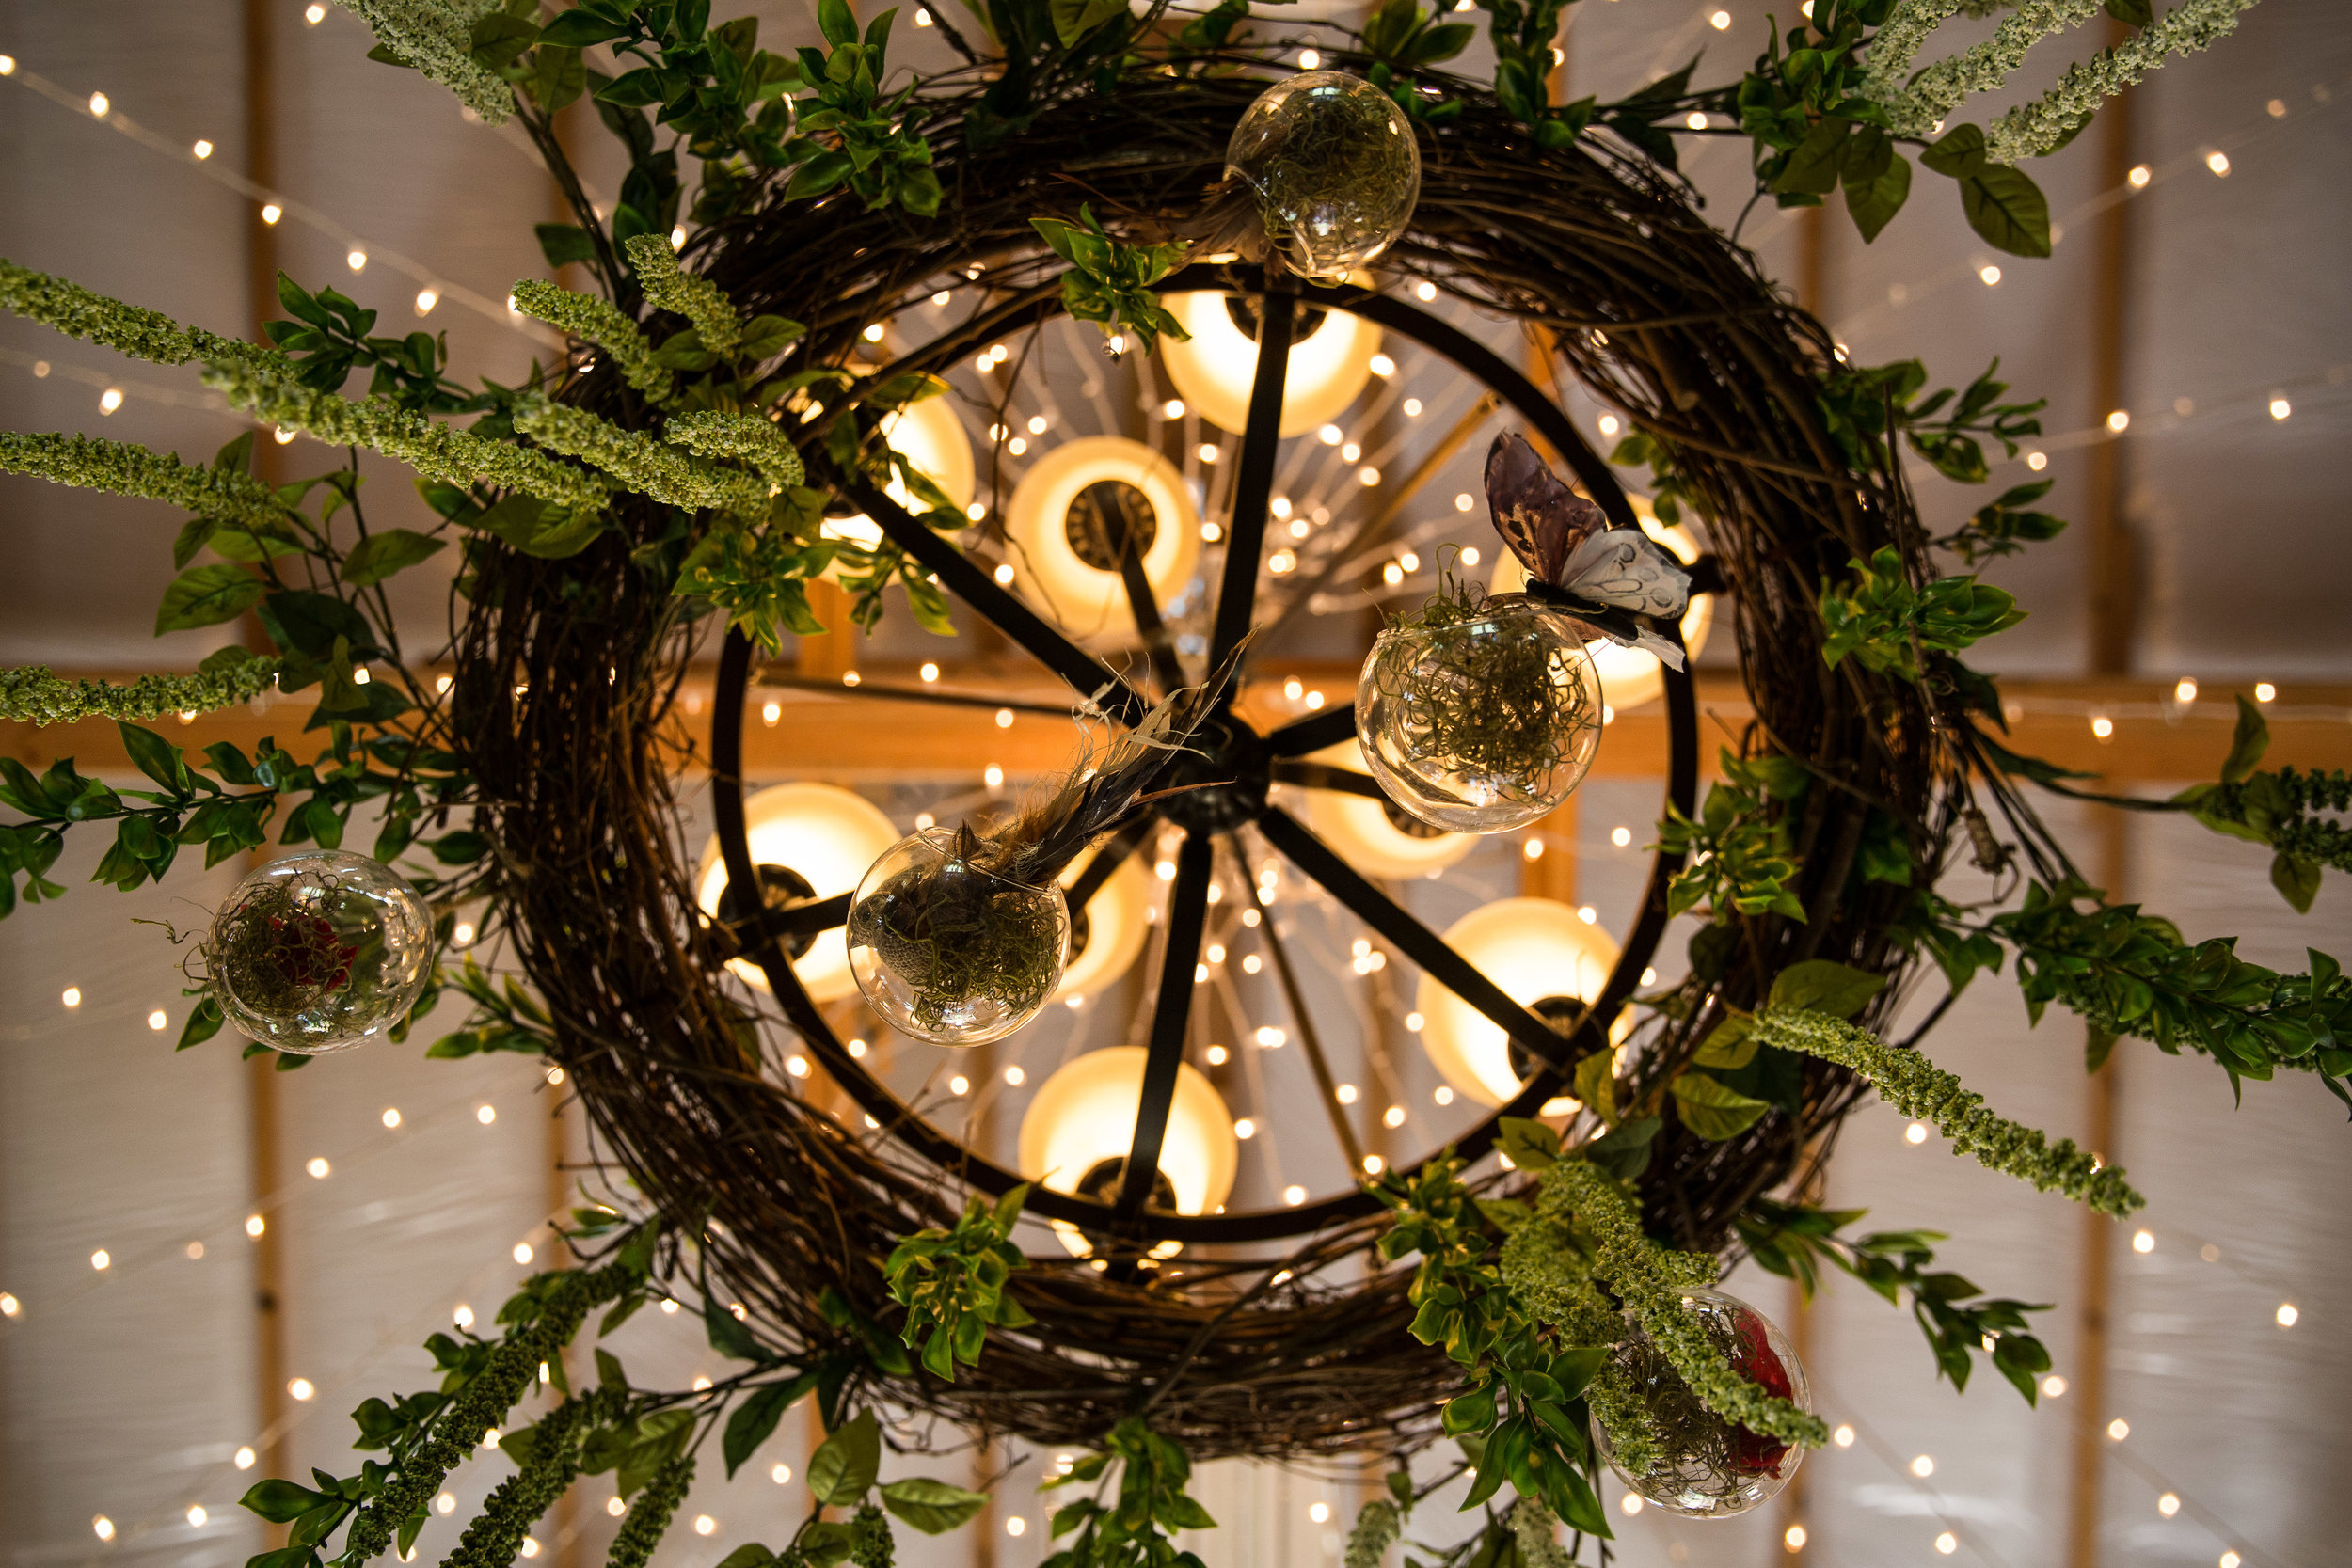 Lansing Michigan Wedding Chandelier from Below_Tania Howard Photography.jpg